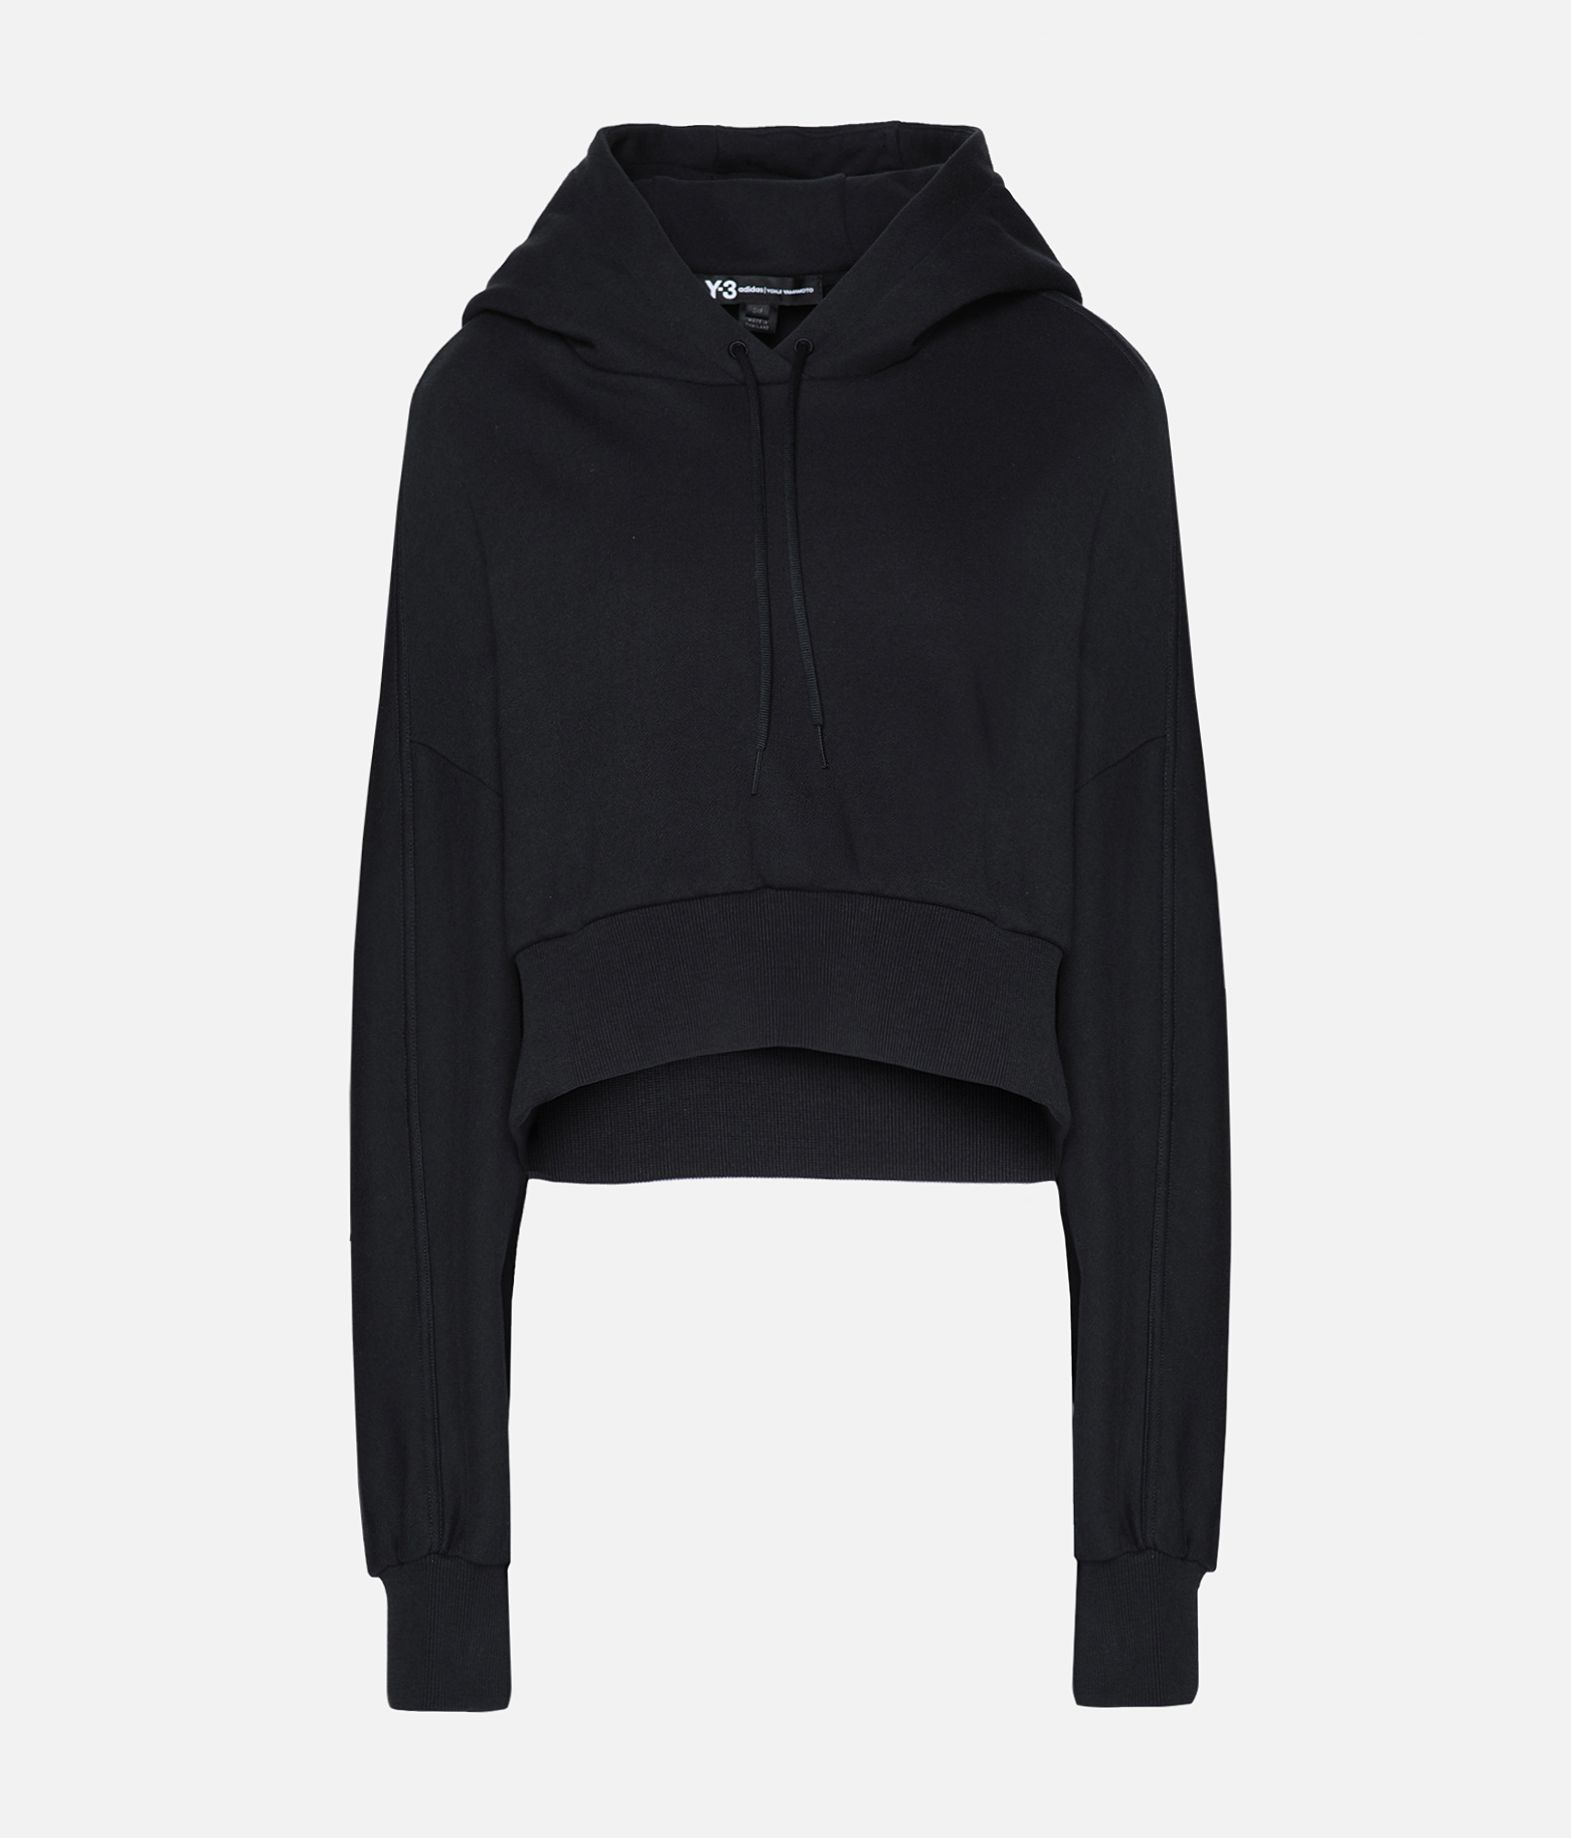 Y-3 Y-3 Toketa Print Cropped Hoodie Hooded sweatshirt Woman f